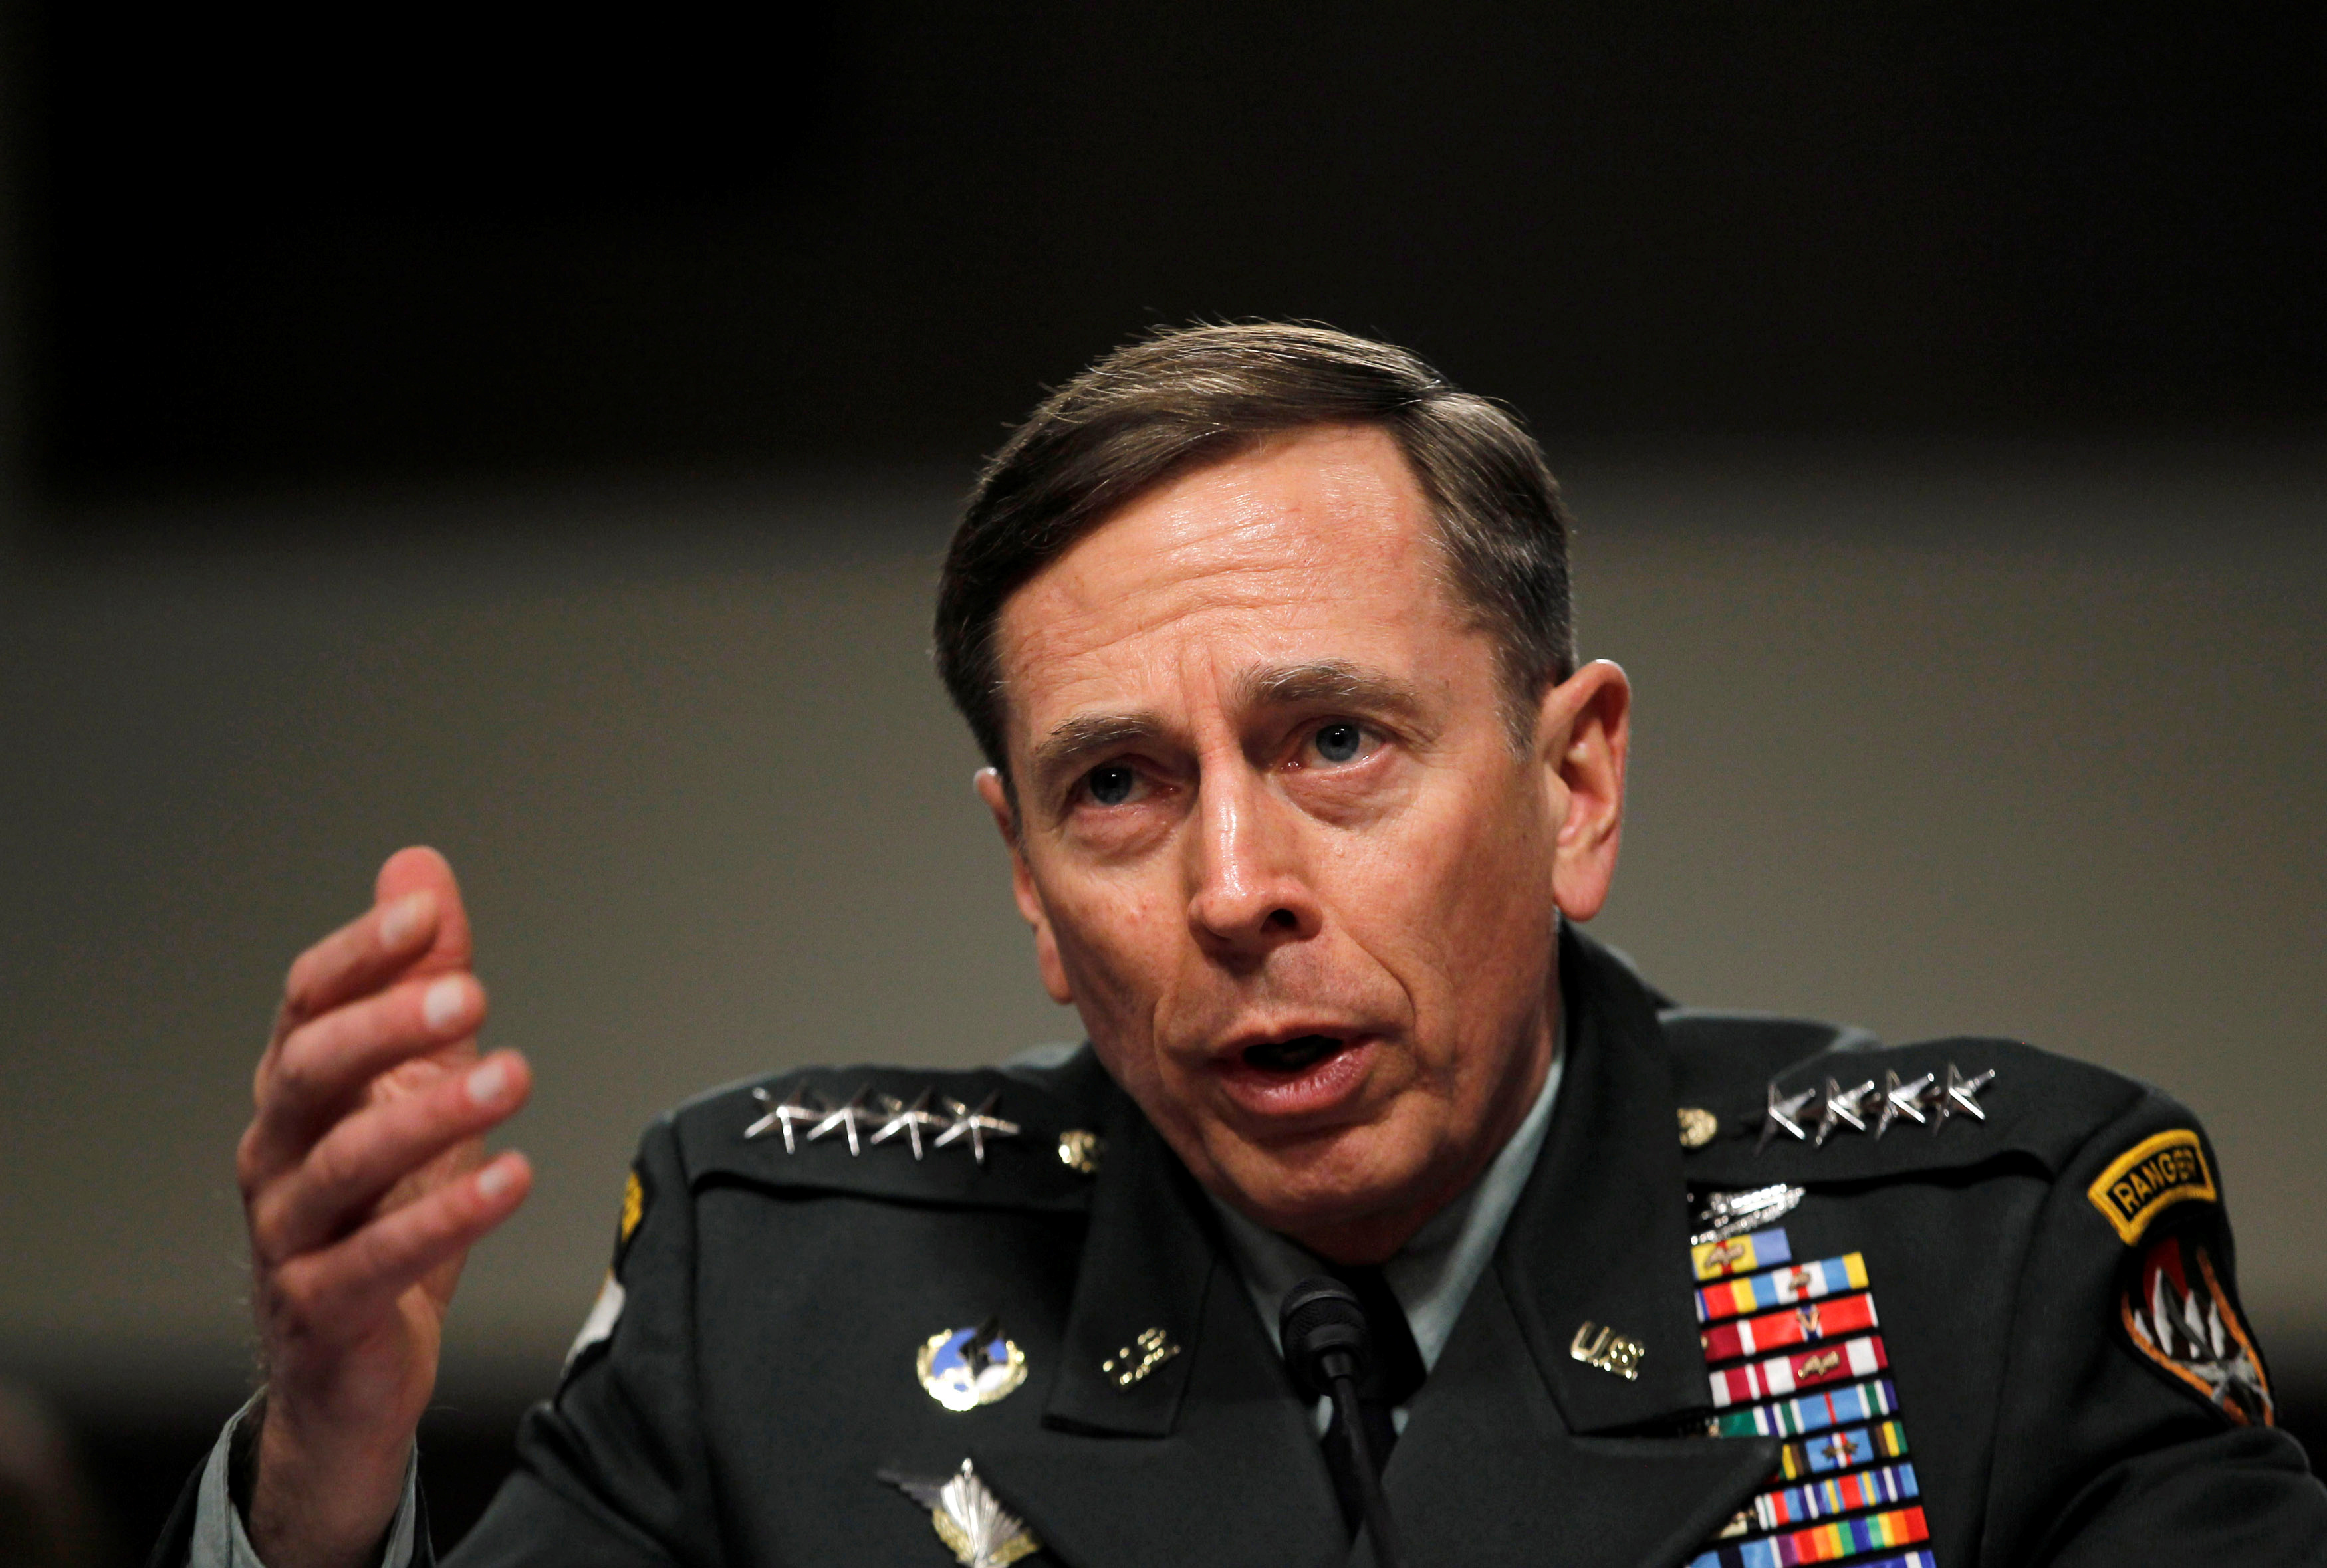 Gen. General David Petraeus, commander of the international security assistance force and commander of US Forces in Afghanistan, testifies at a Senate Armed Services committee hearing on the situation in Afghanistan, on Capitol Hill in Washington, DC.